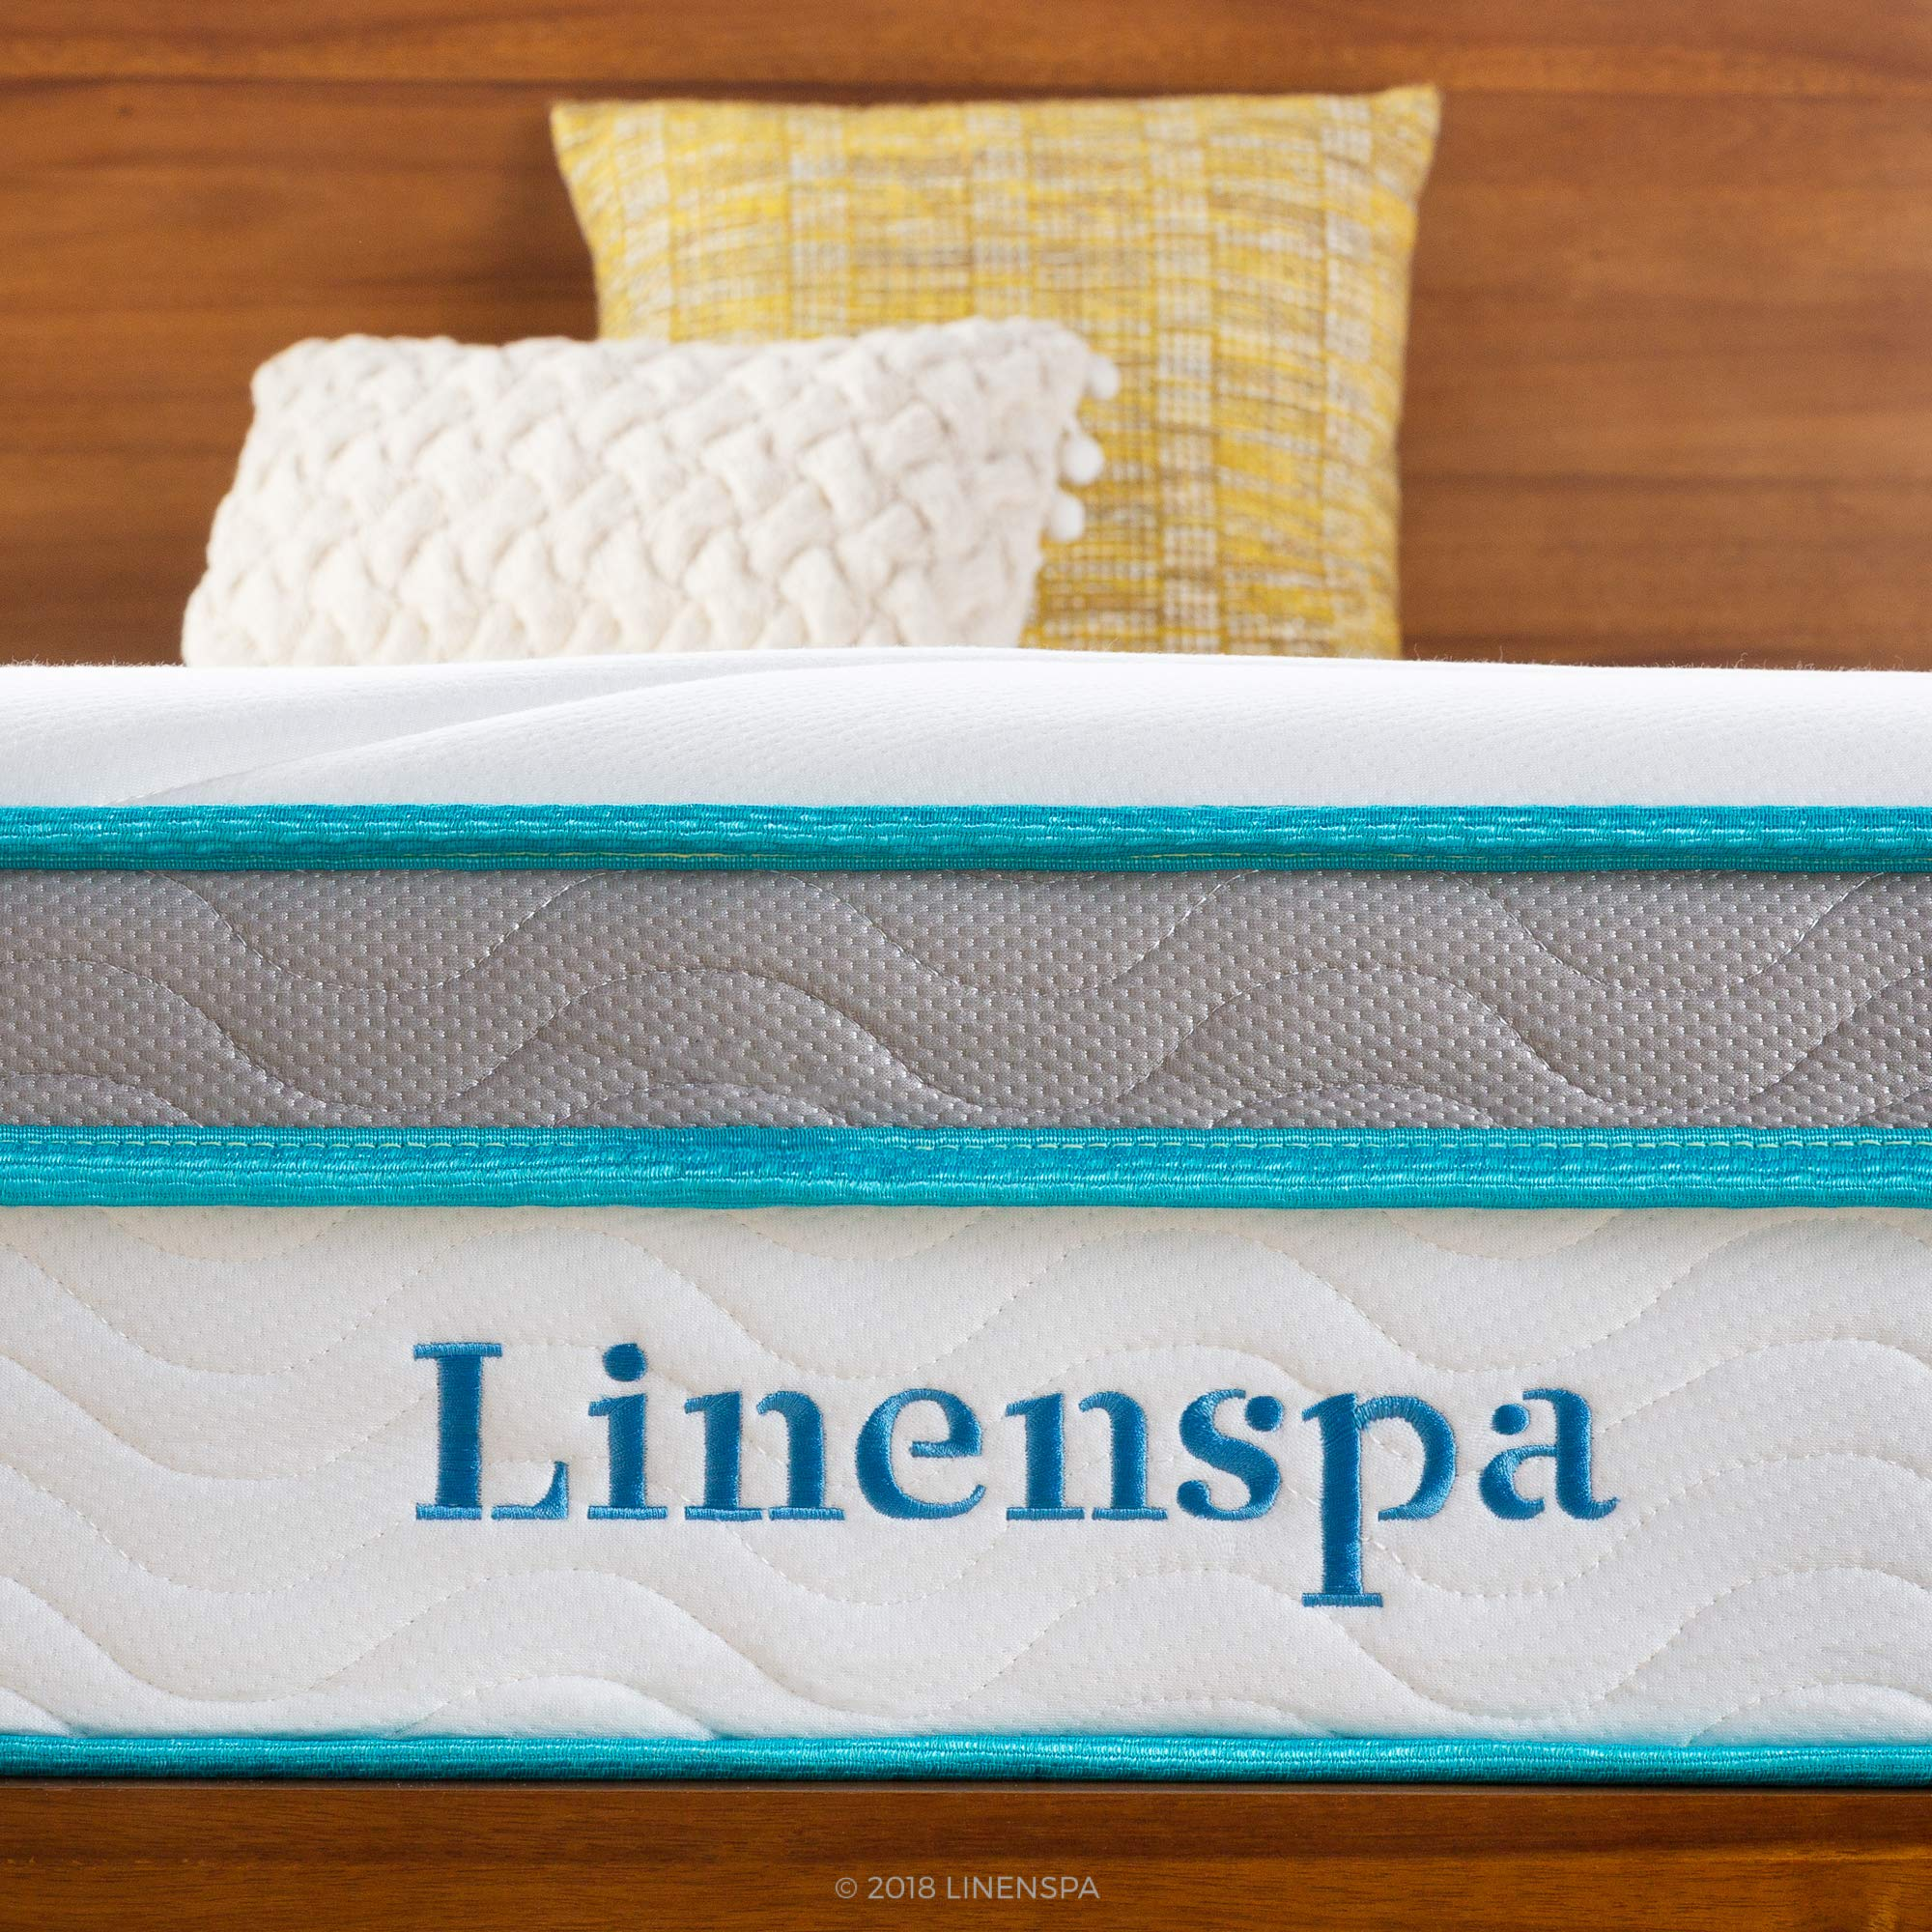 Linenspa LS10FFMFSP Bed Mattress Conventional, Full, 10-Inch by Linenspa (Image #4)